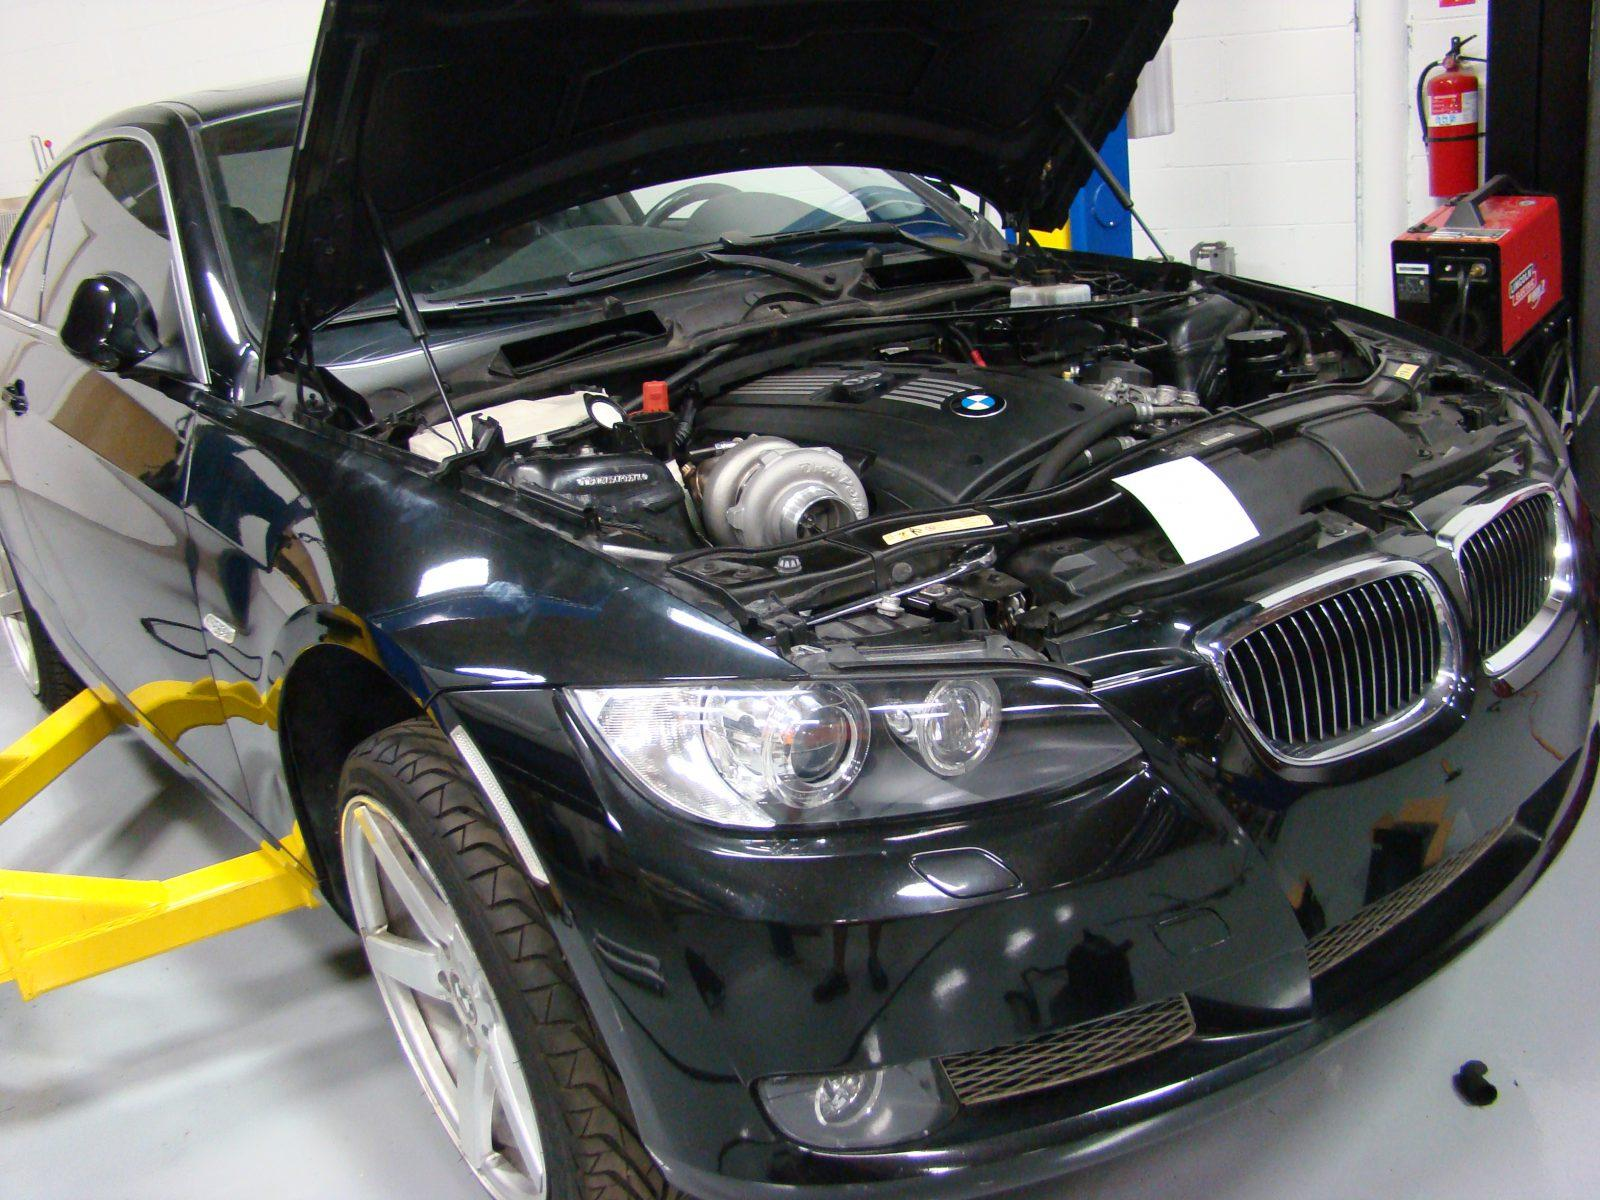 5 Things That Might Indicate an Impending BMW Water Pump Failure